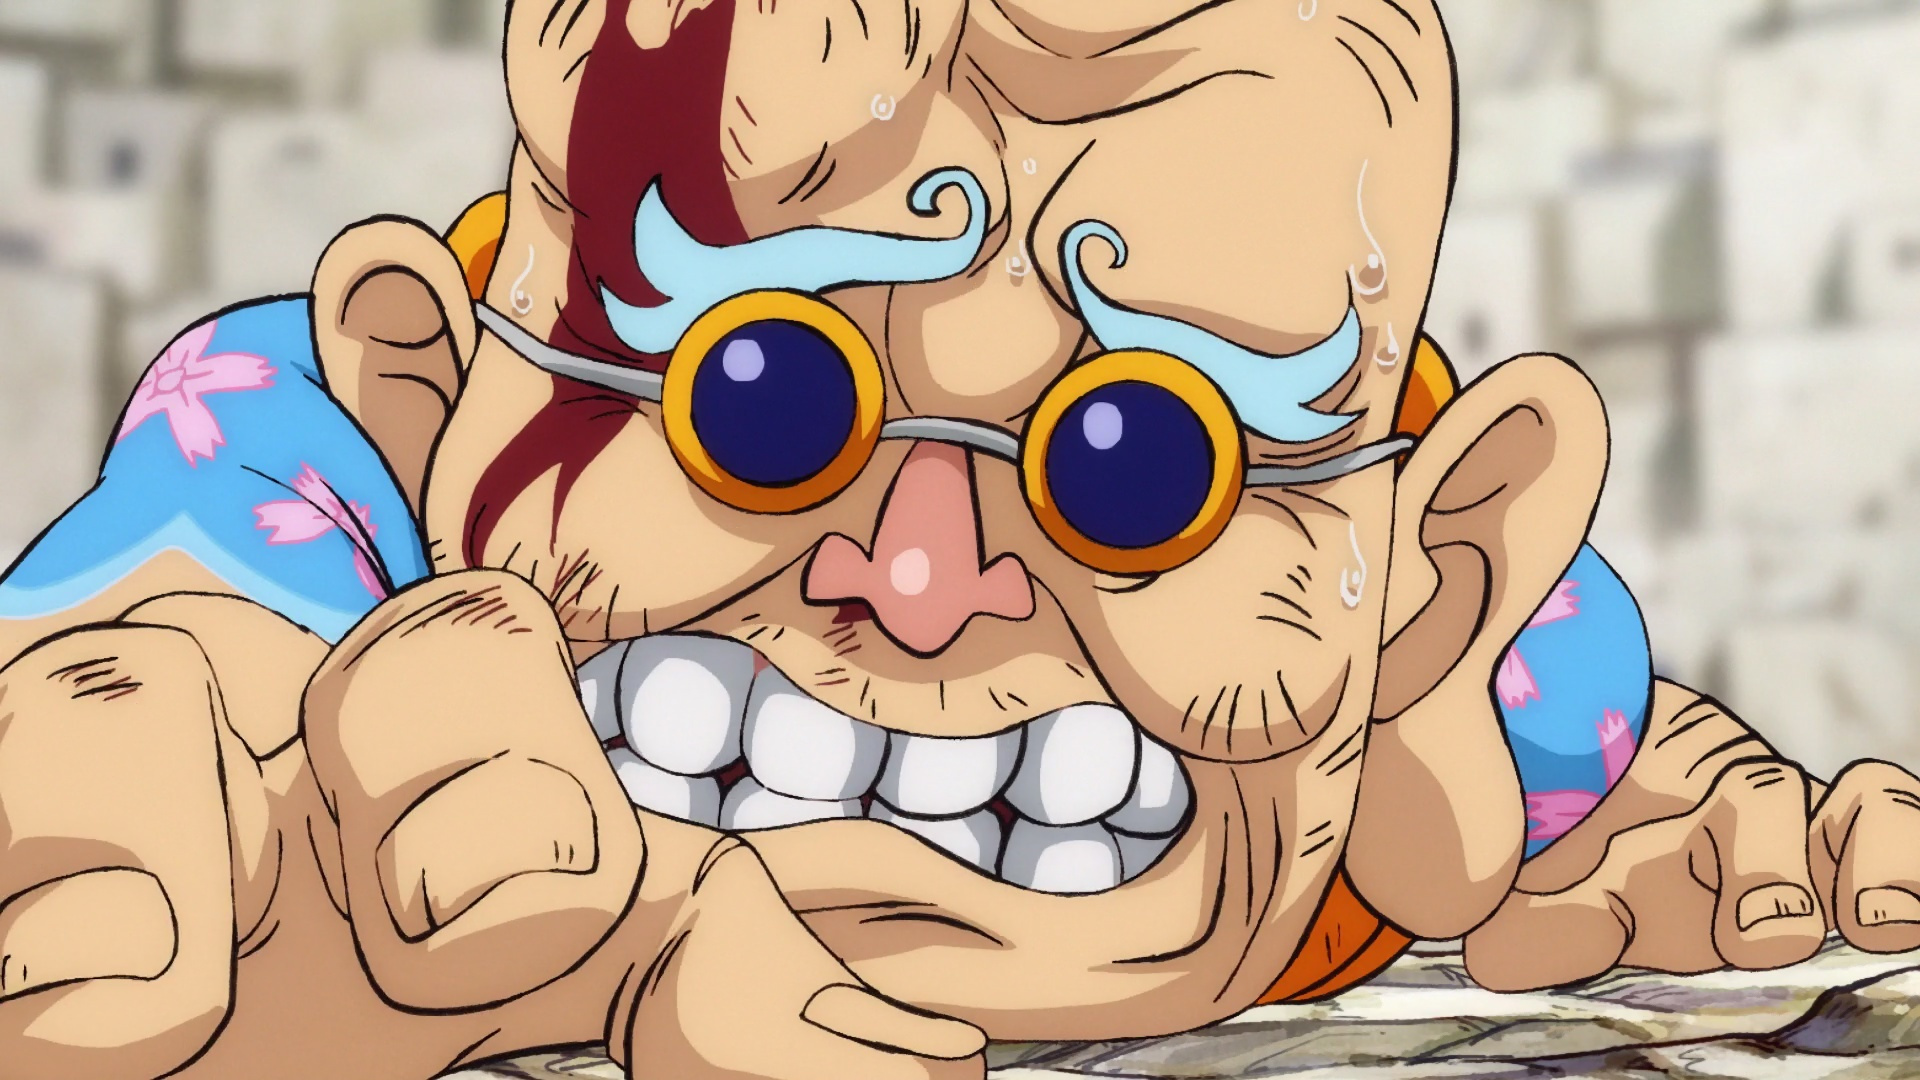 ONE PIECE 929 VOSTFR SD/HD/HD 10BITS/FHD News background